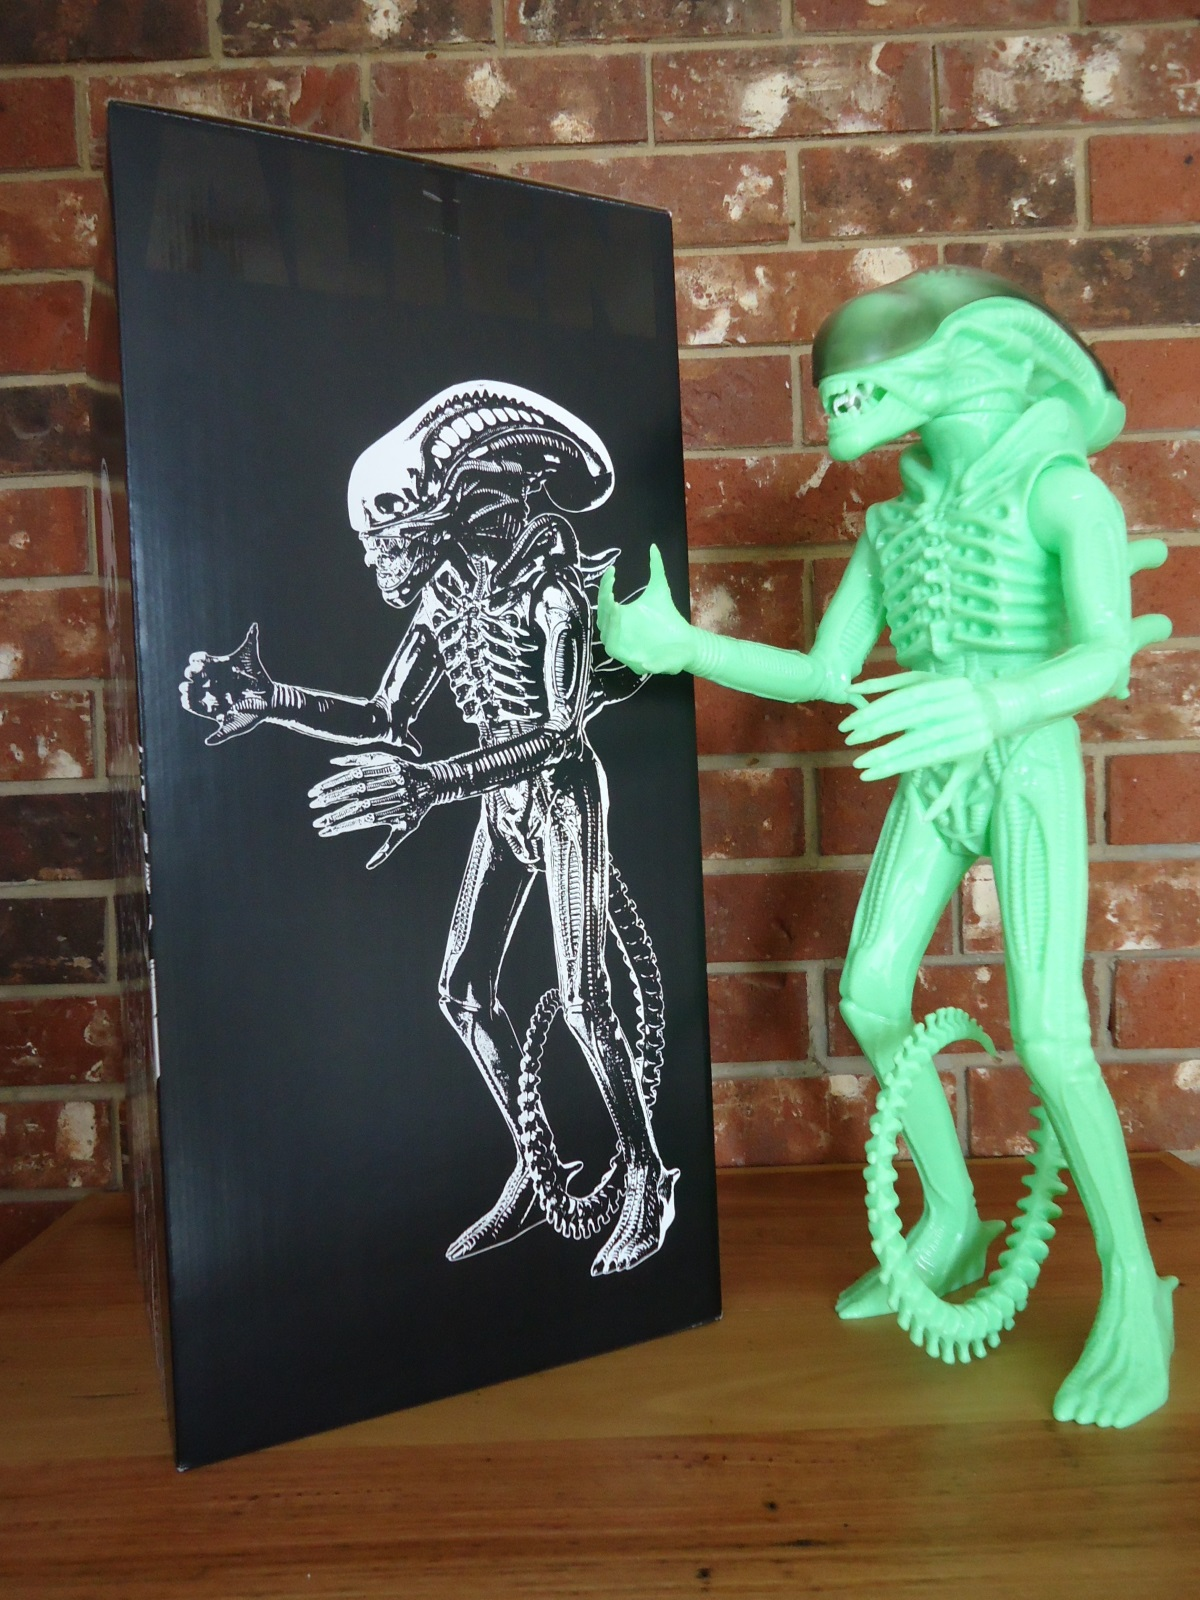 24 inch tall Gentle Giant glow in the dark ALIEN action figure and box.